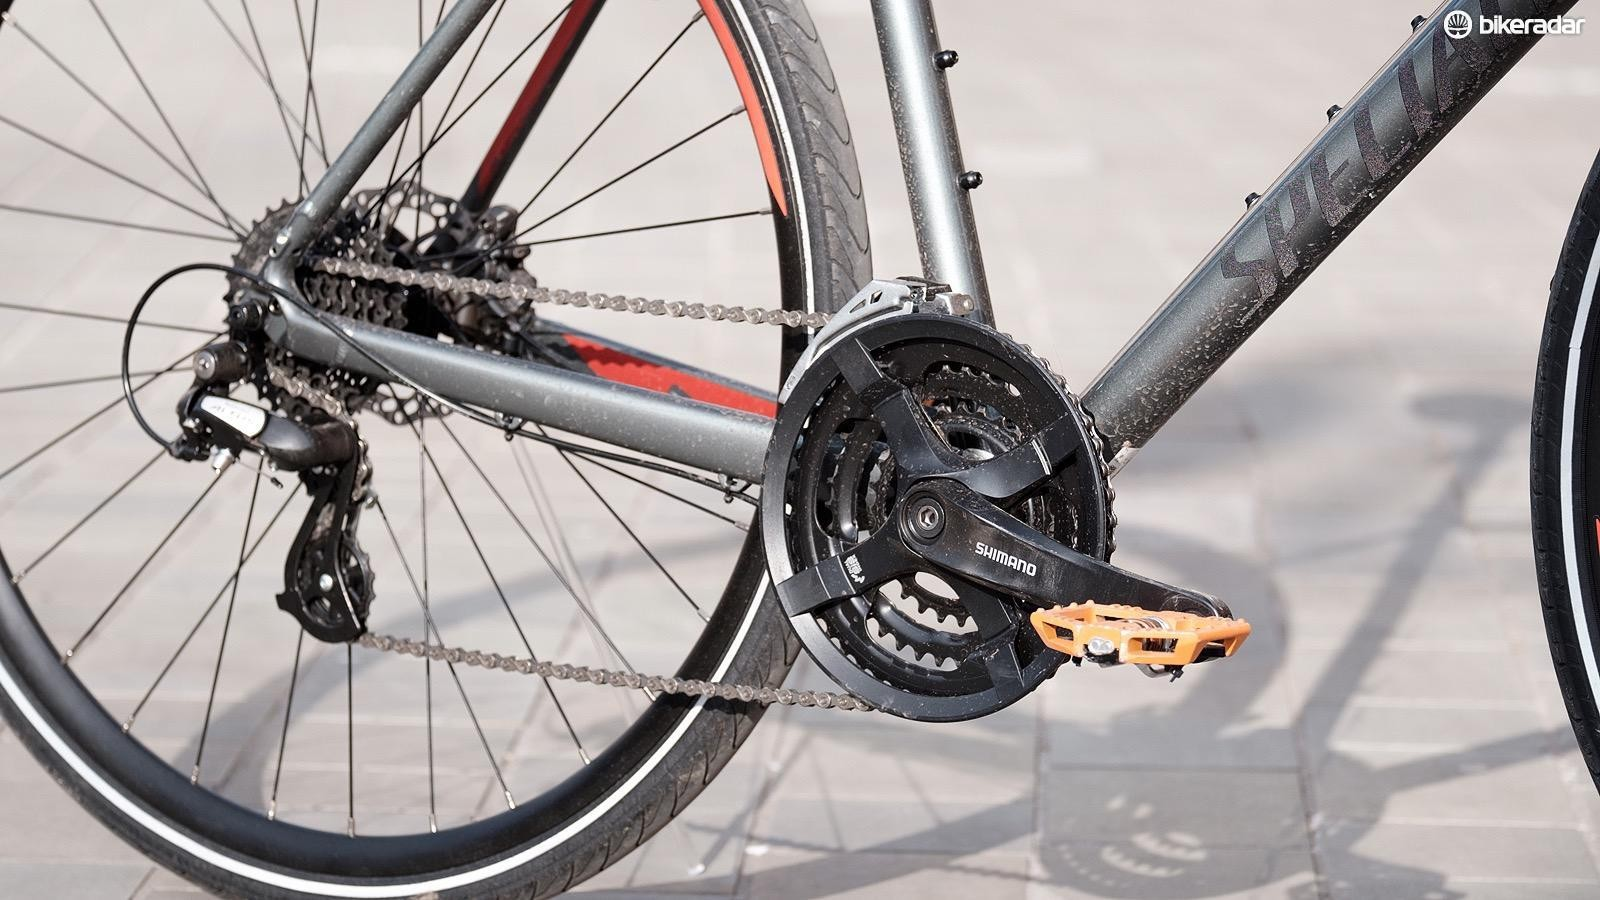 An external drivetrain with a front and rear derailleur